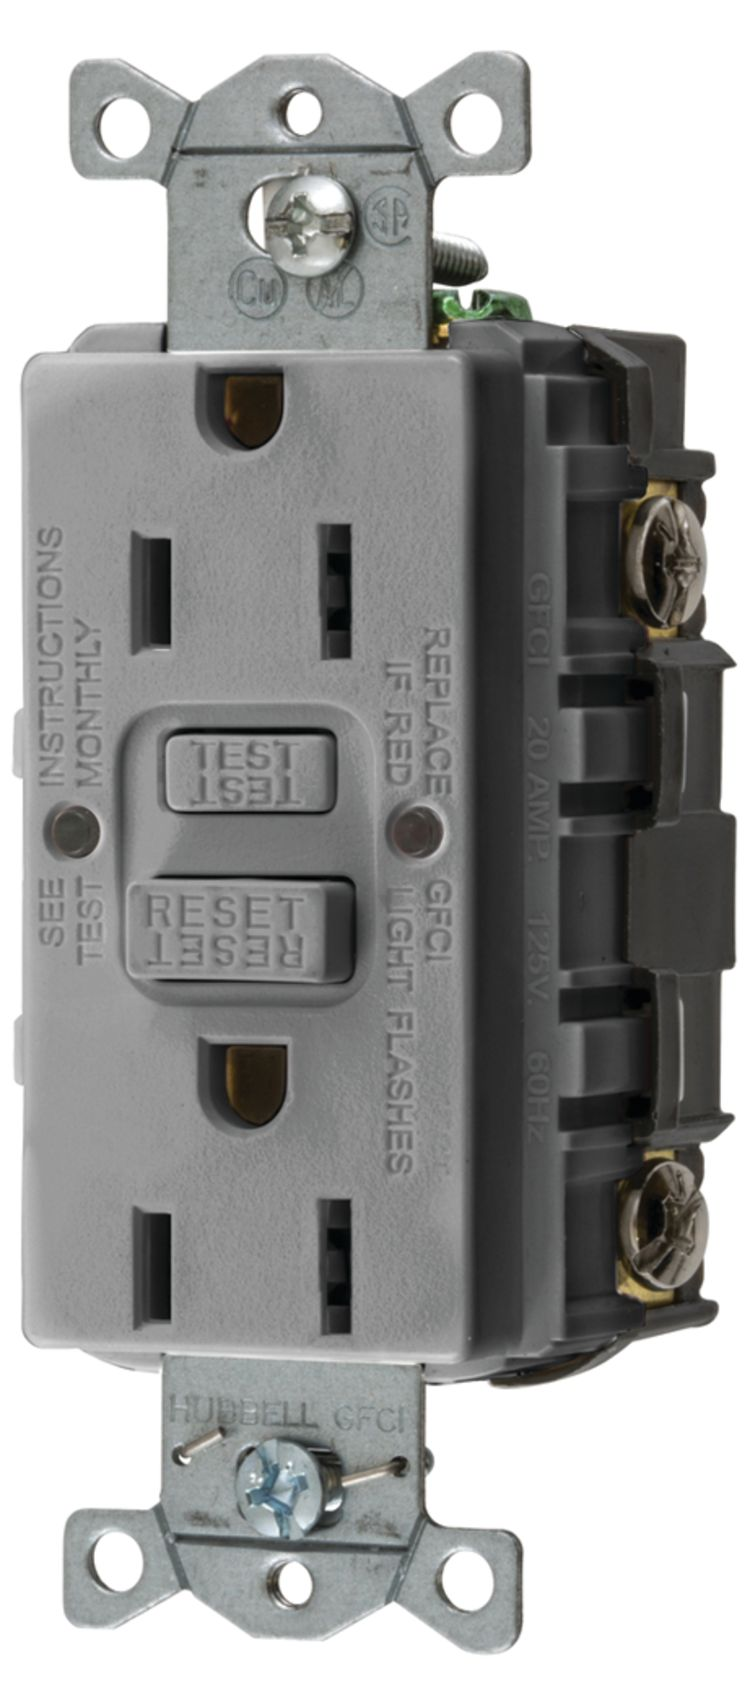 Hubbell Gfrst52mgy Fisheries Supply Groundfault Circuit Interrupter Outlet Ground Fault Gfci